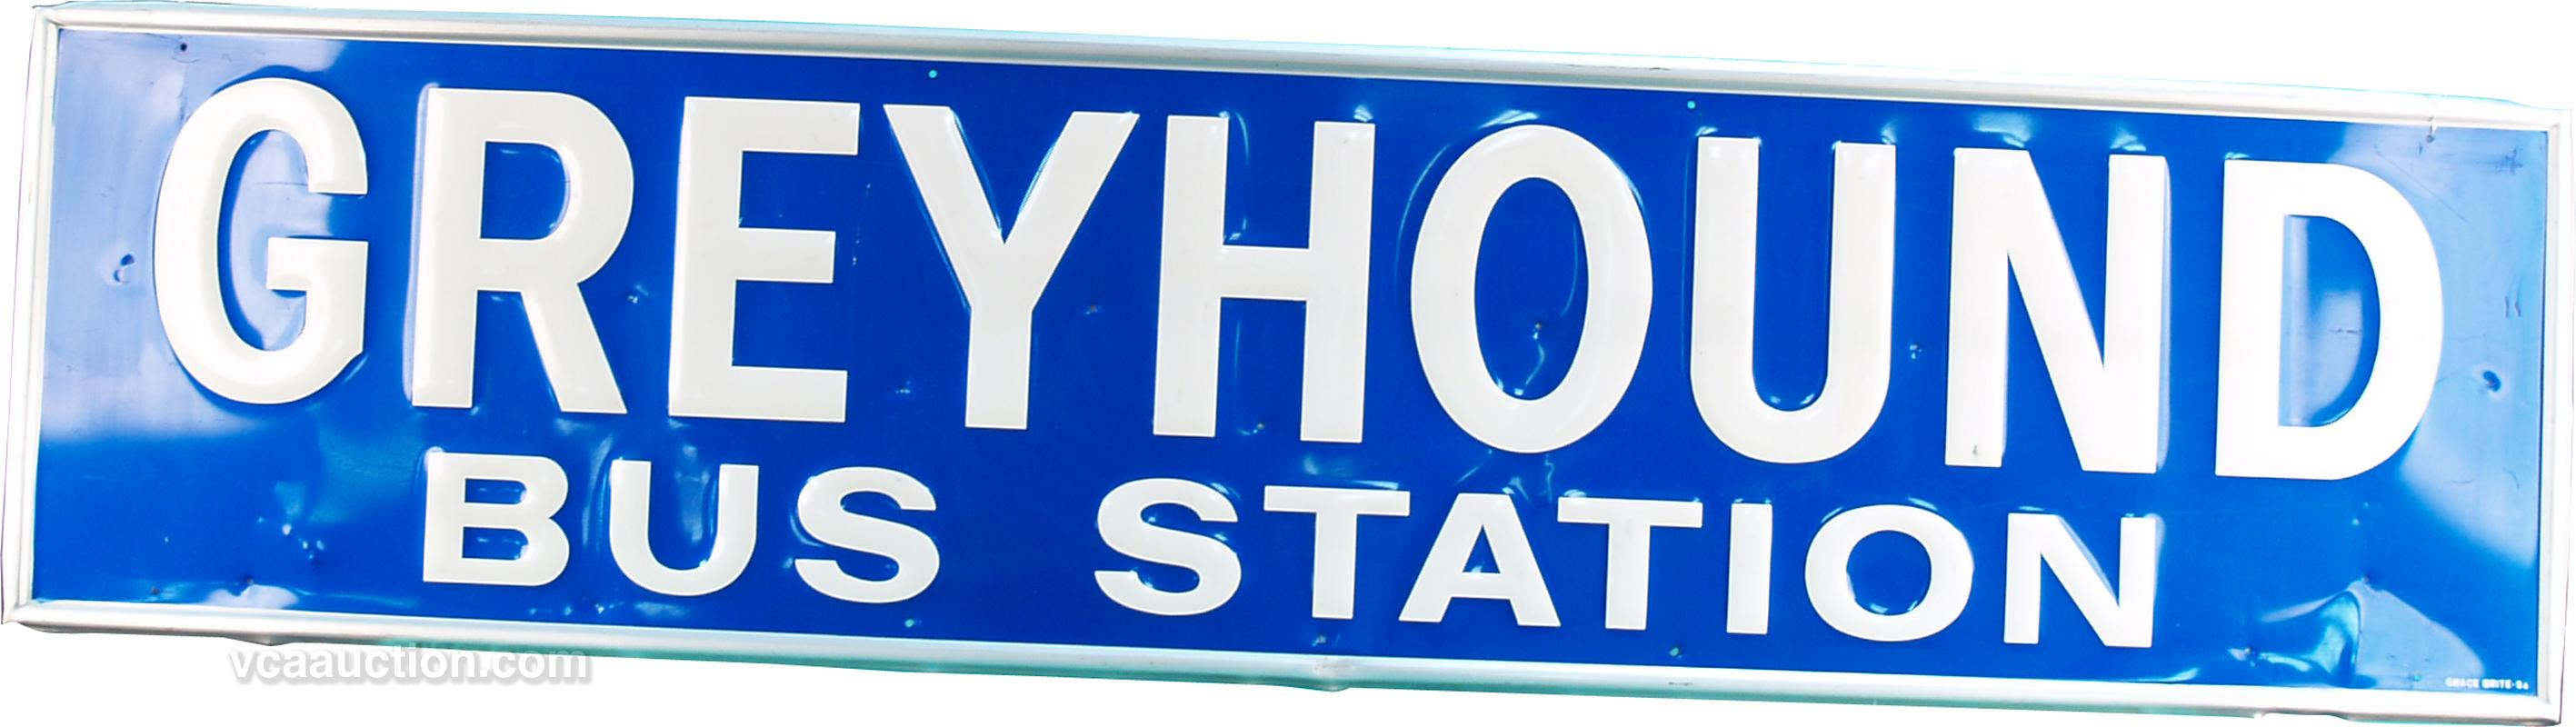 Greyhound Bus Station Embossed Tin Sign, Blue w/ White